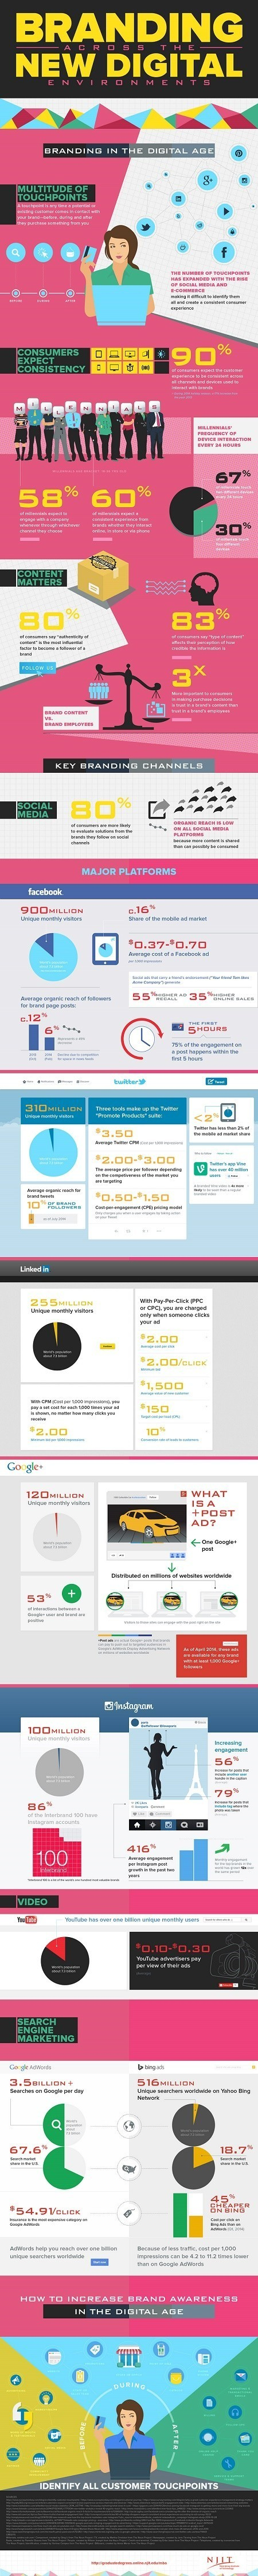 How to Brand Across Multiple Touchpoints [Infographic] | Integrated Brand Communications | Scoop.it